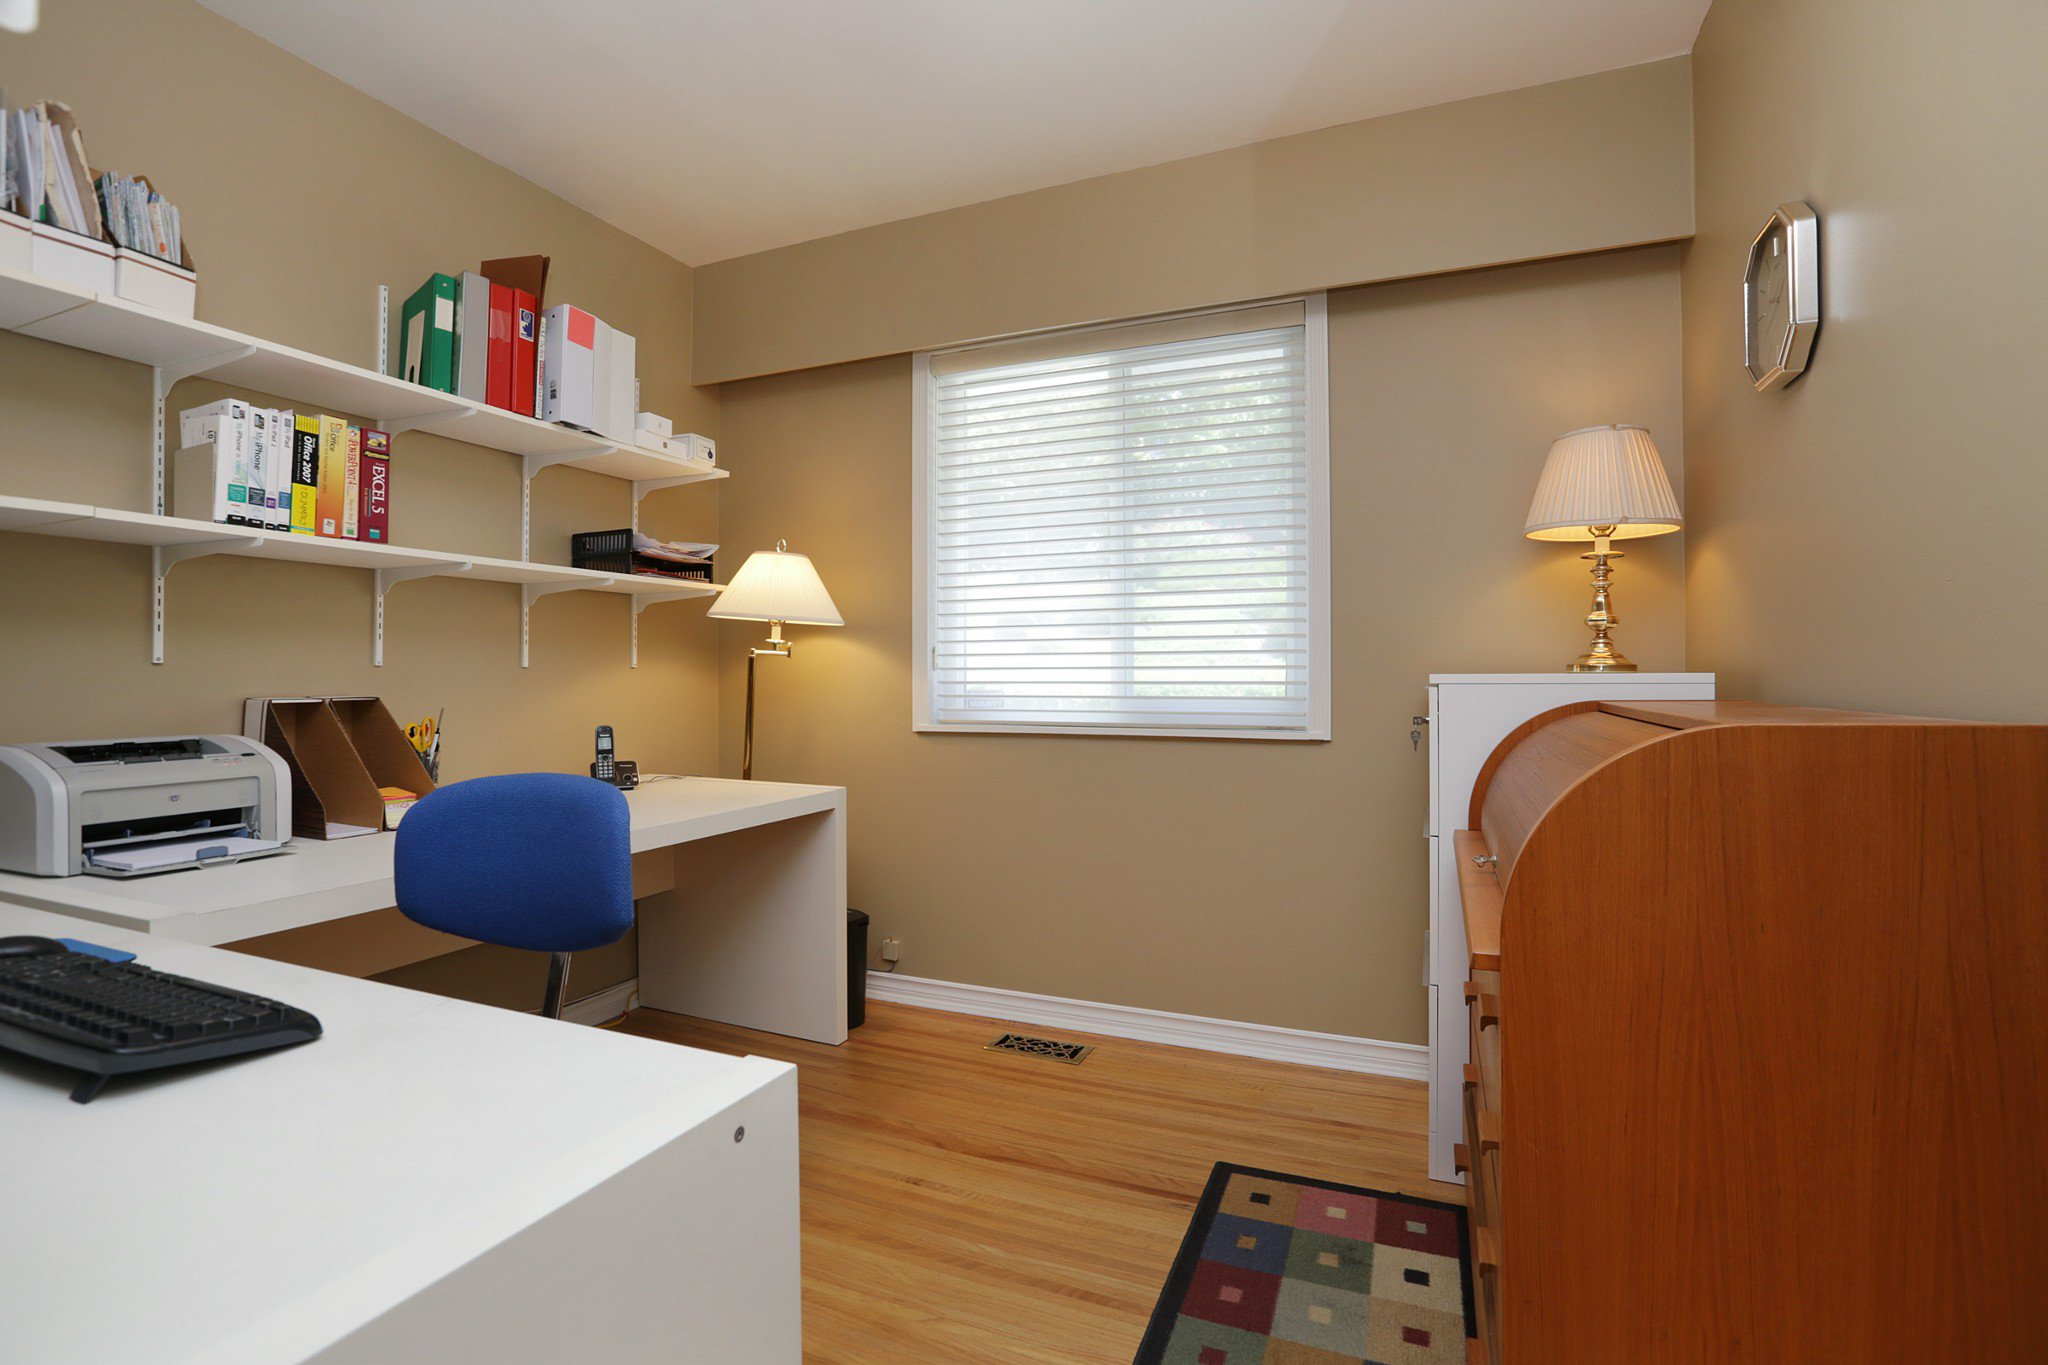 Photo 14: Photos: 372 VENTURA Crescent in North Vancouver: Upper Delbrook House for sale : MLS®# R2284717